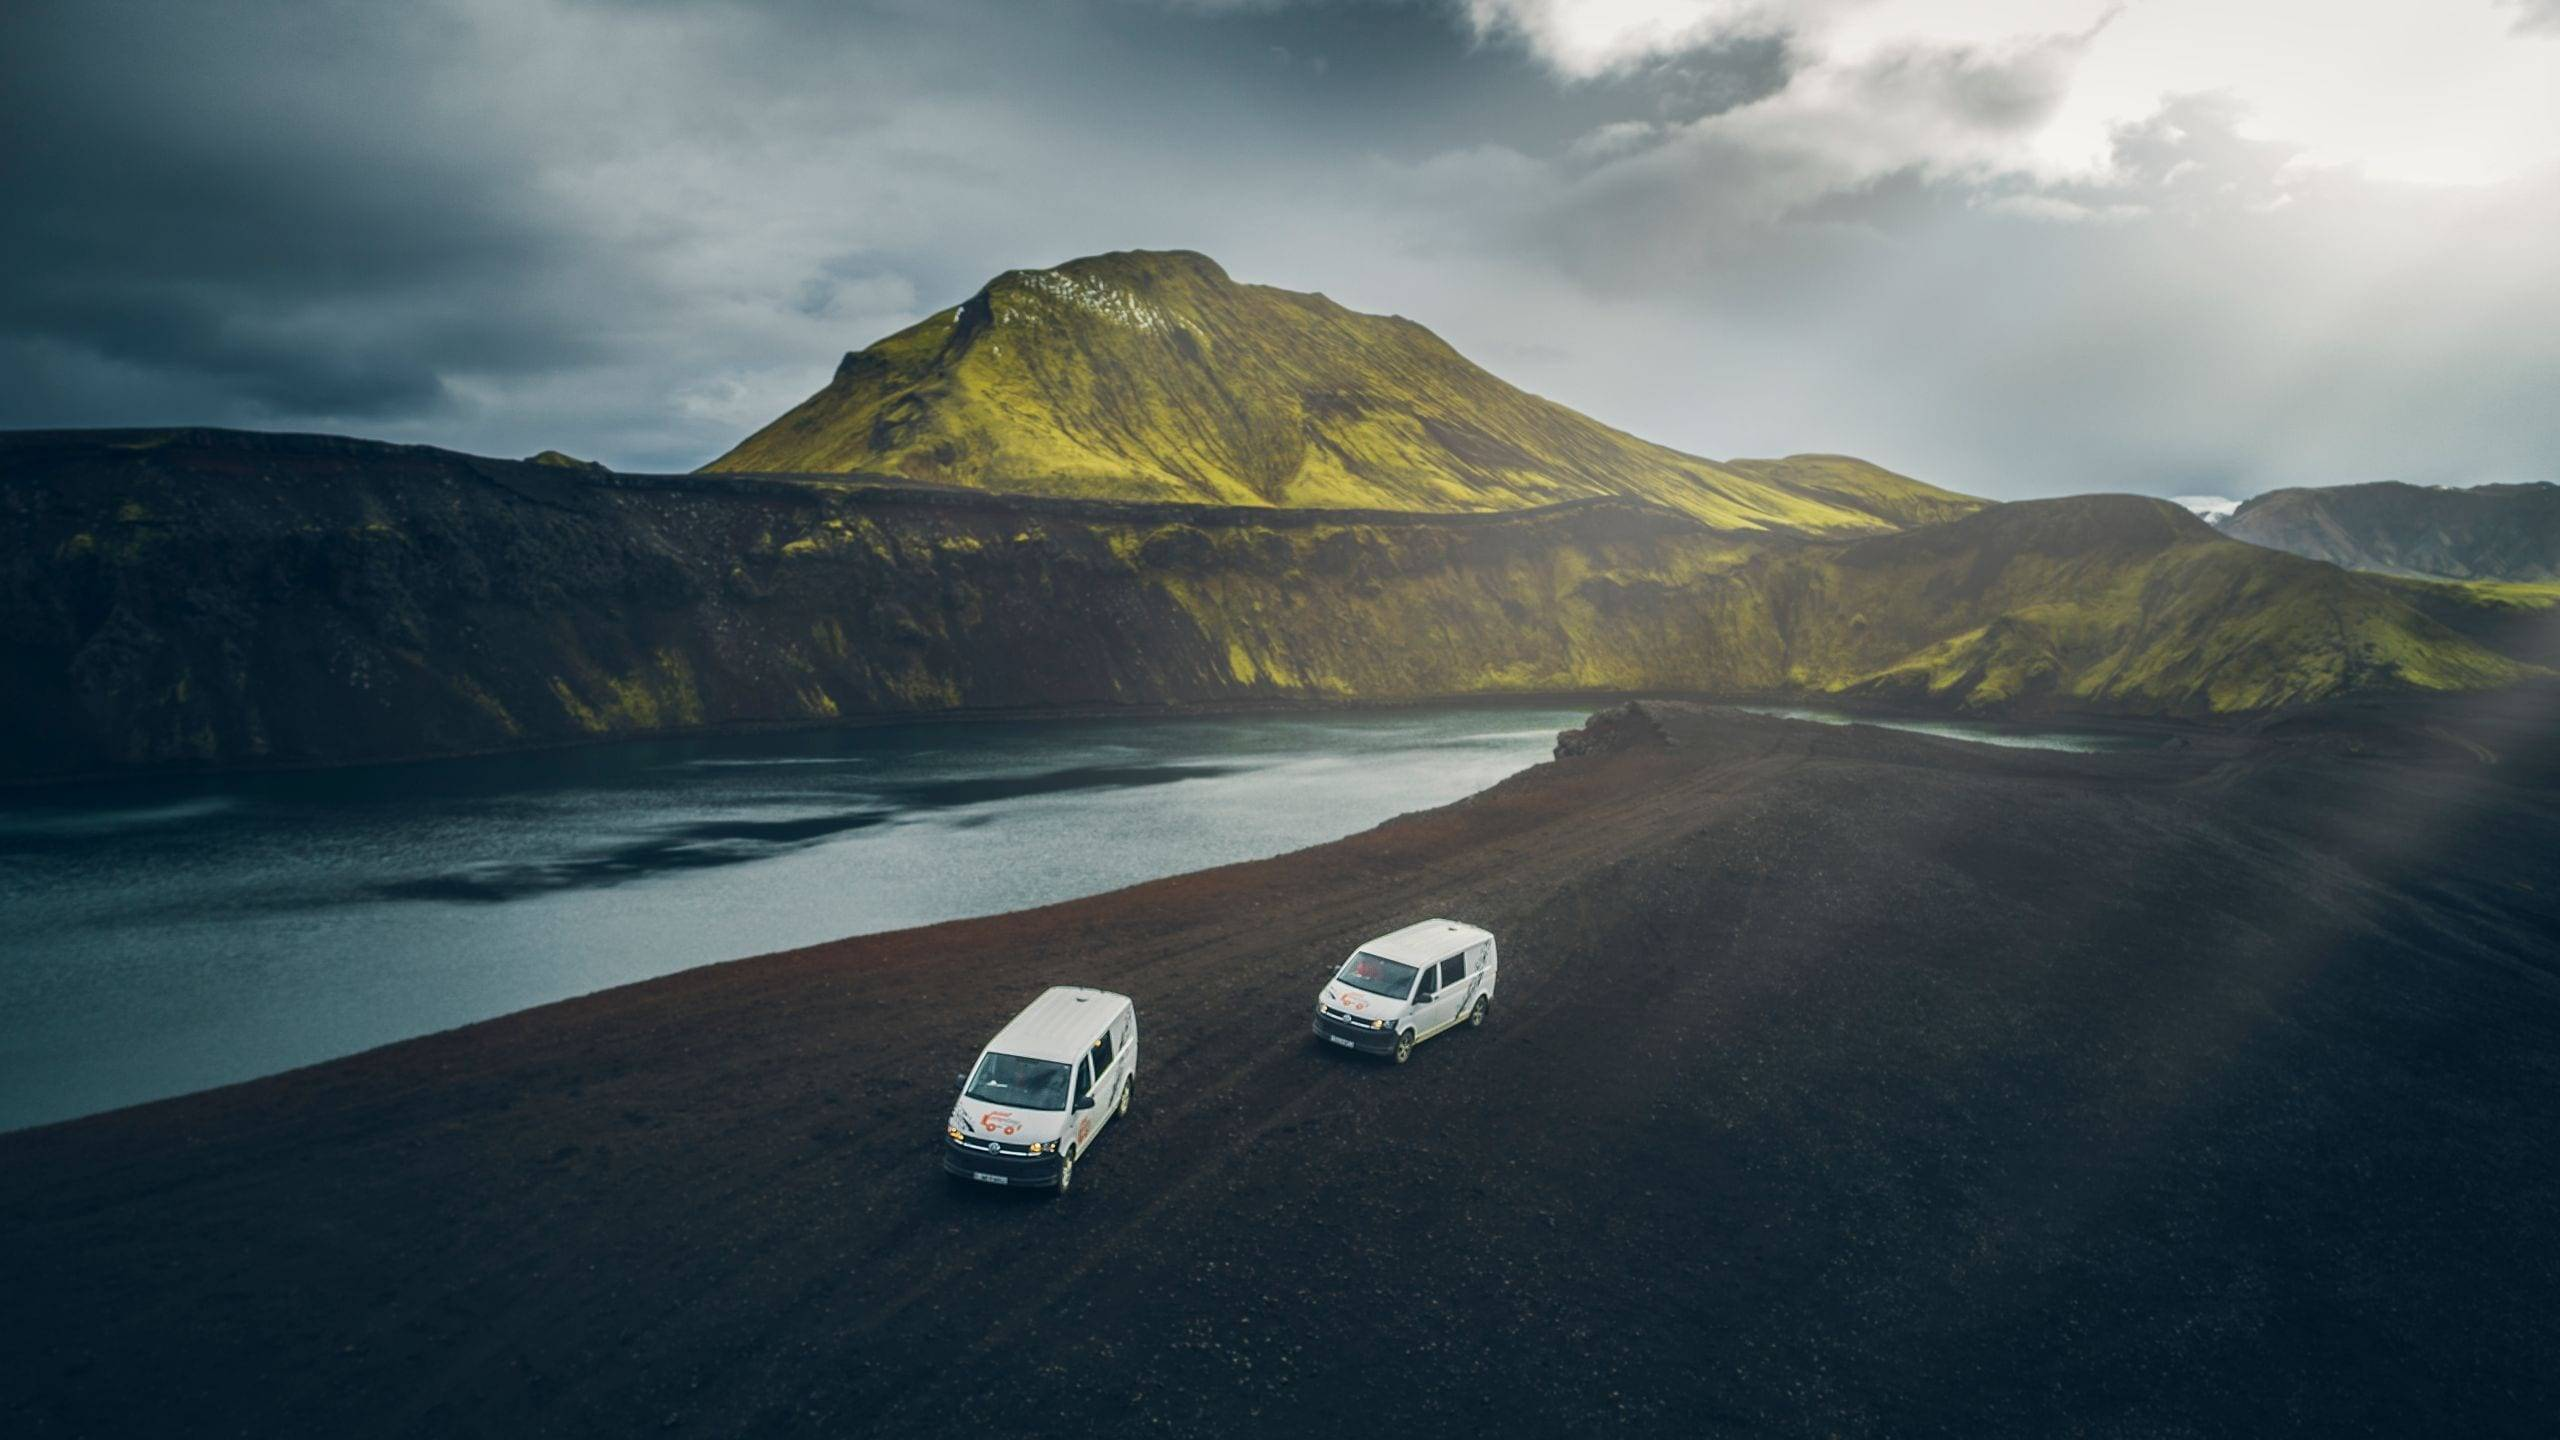 2 campers in the Icelandic Highlands